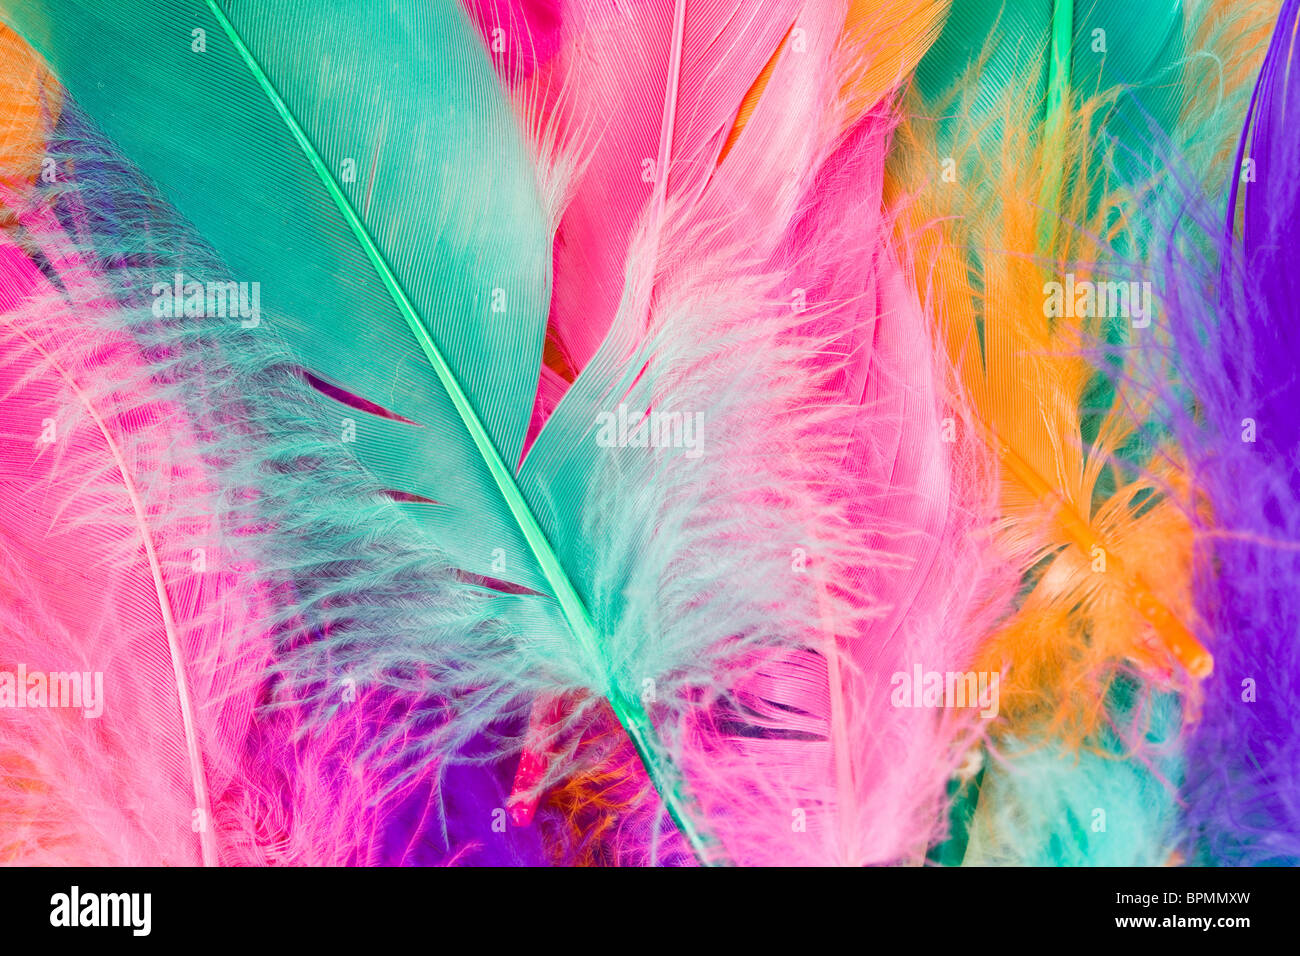 Colorful Feather close up shot - Stock Image